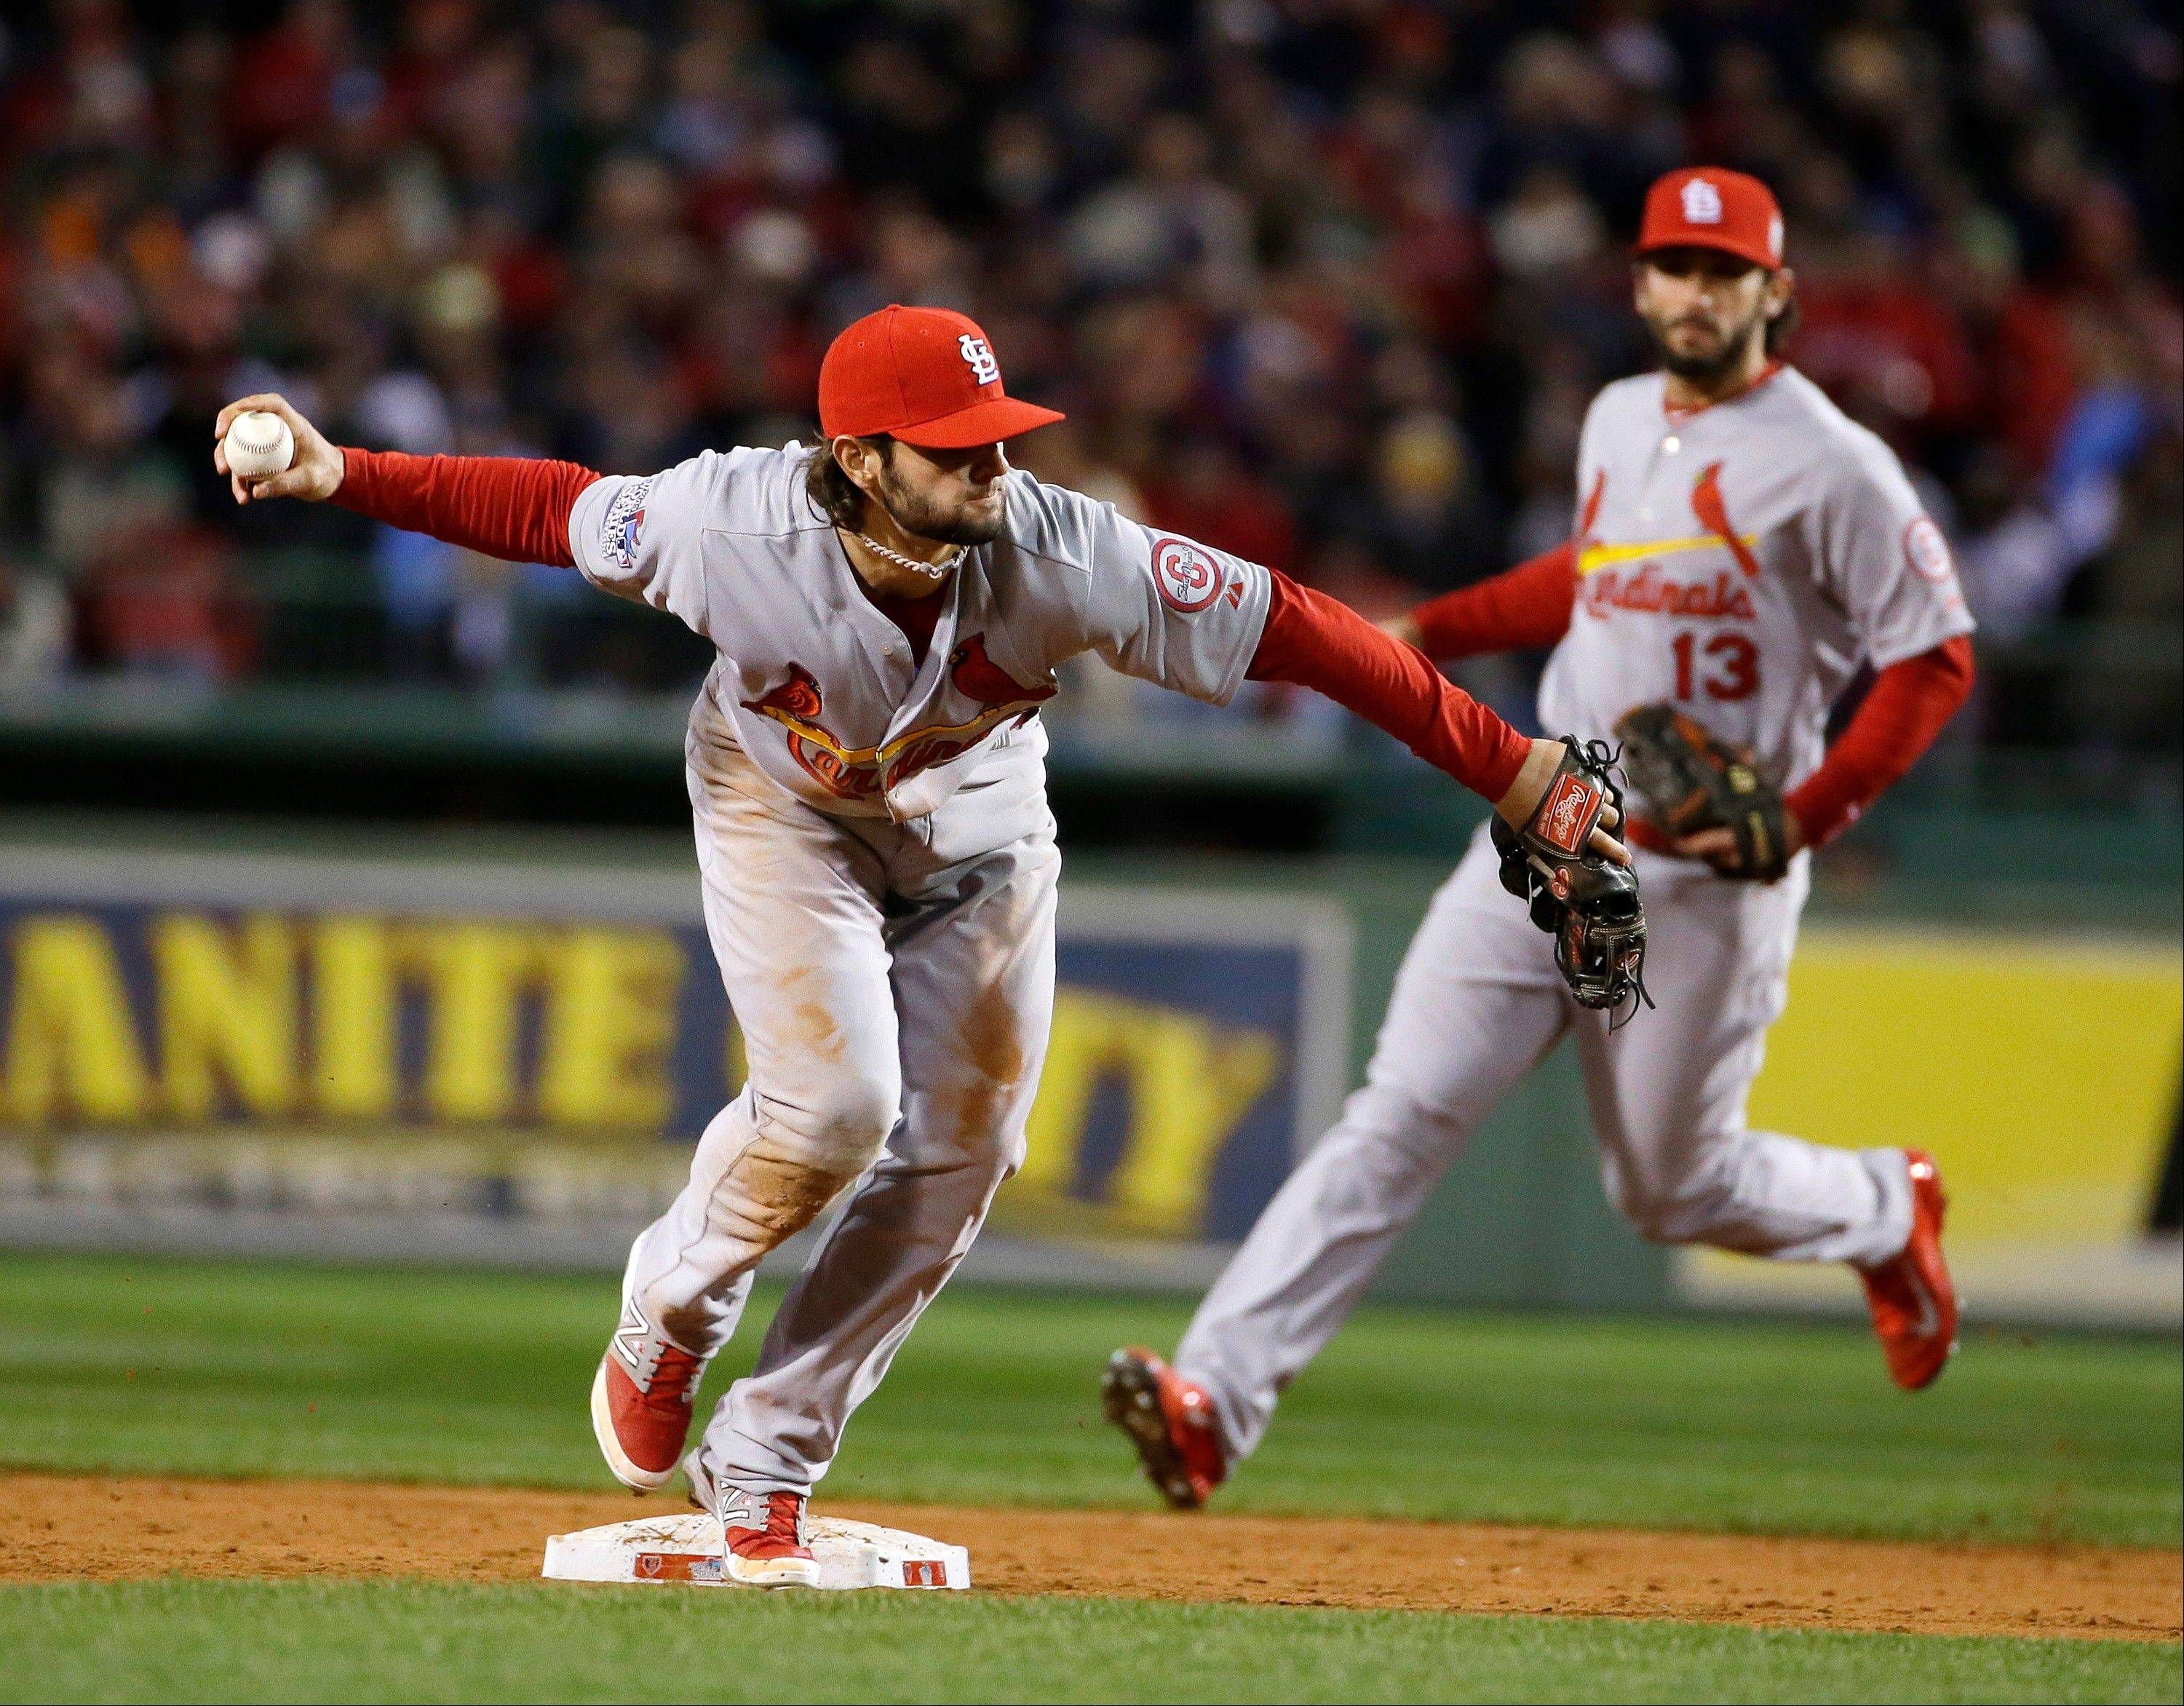 The Cardinals' Pete Kozma throws out Boston's Stephen Drew at first during the seventh inning of Game 2.